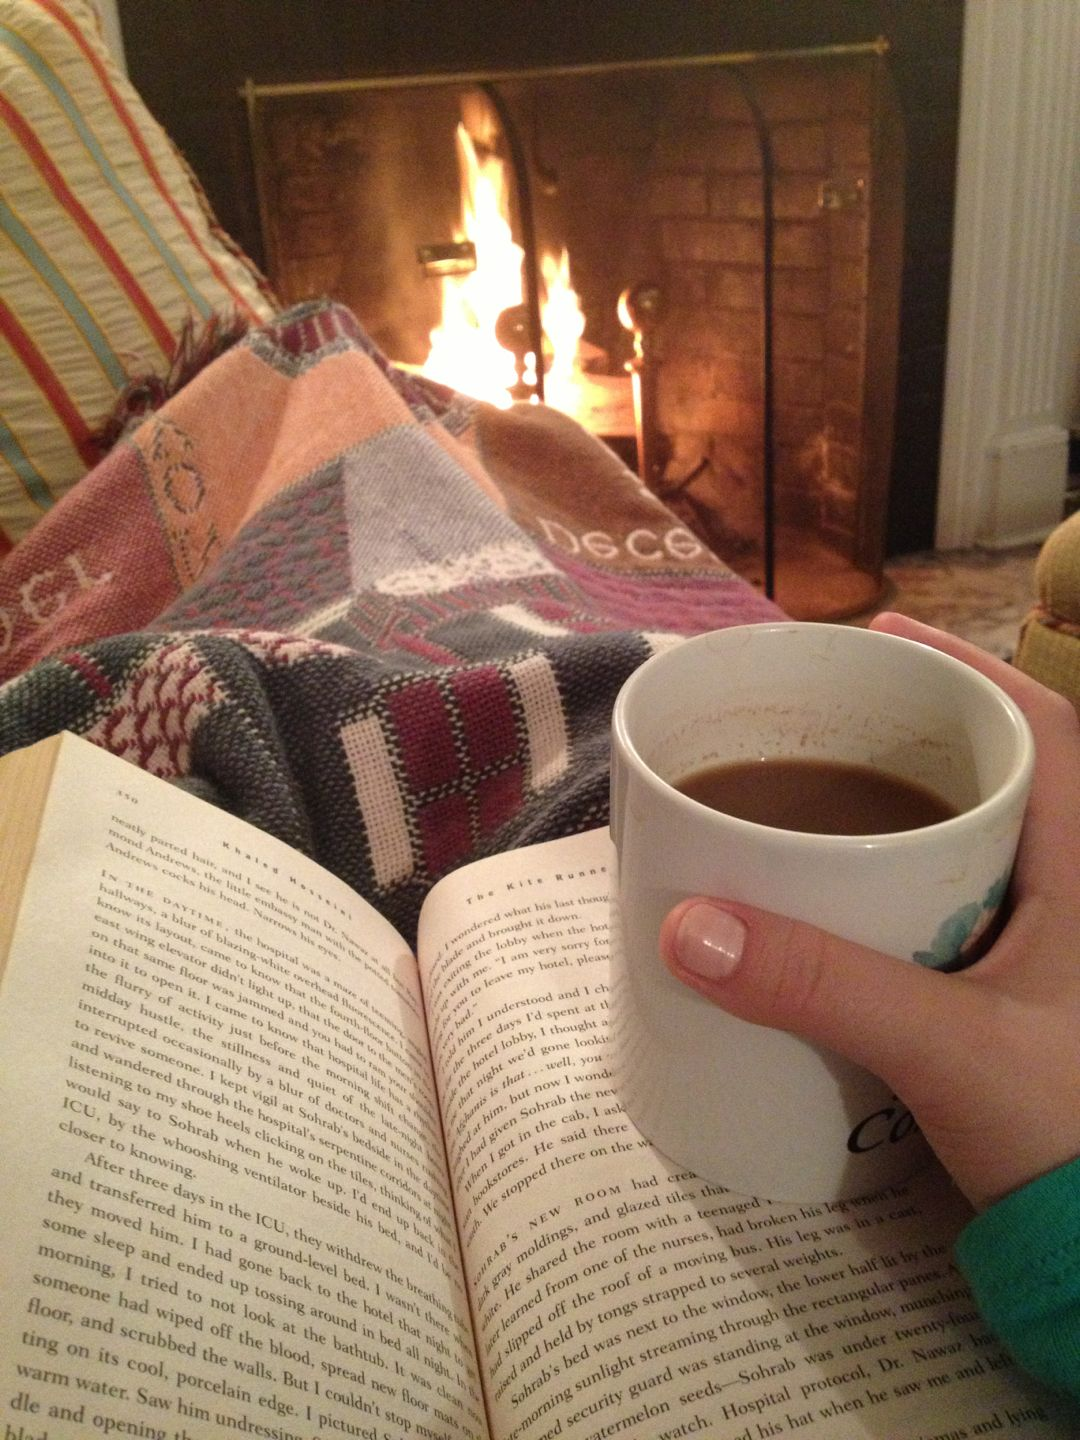 The Comfort Of Home On A Cold Night A Crackling Fire A